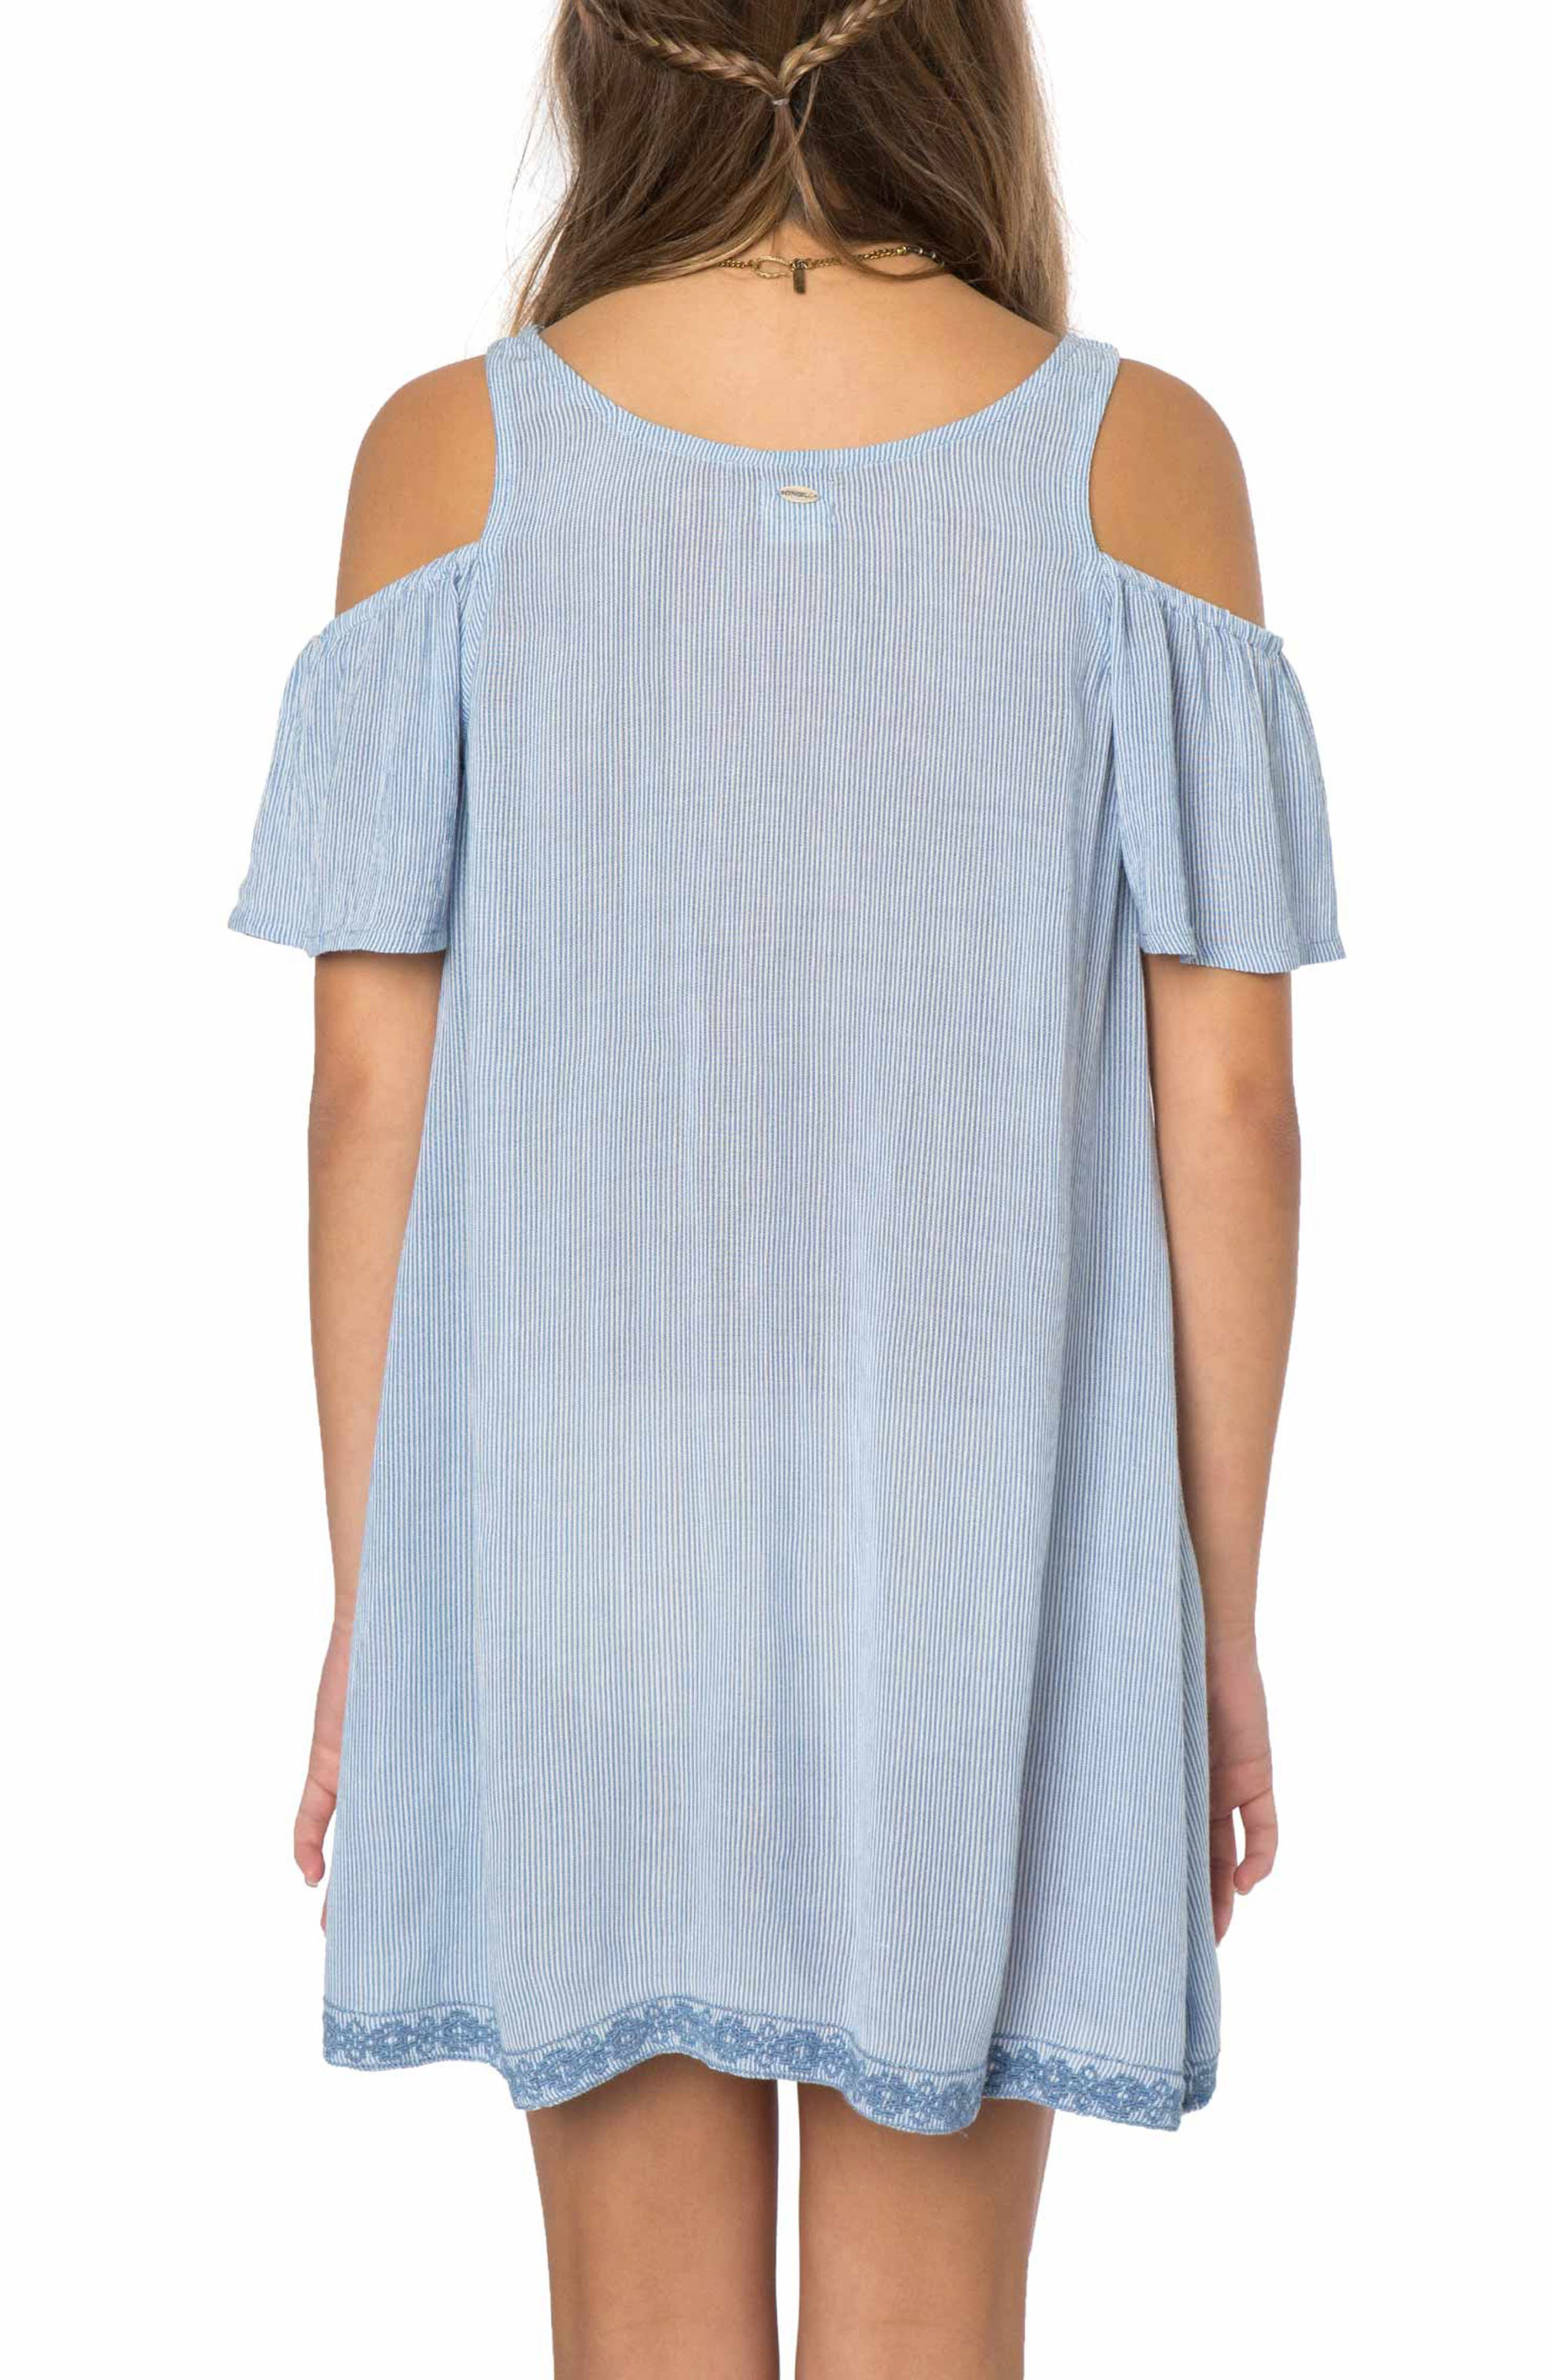 Arie Cold Shoulder Dress,                             Alternate thumbnail 2, color,                             400